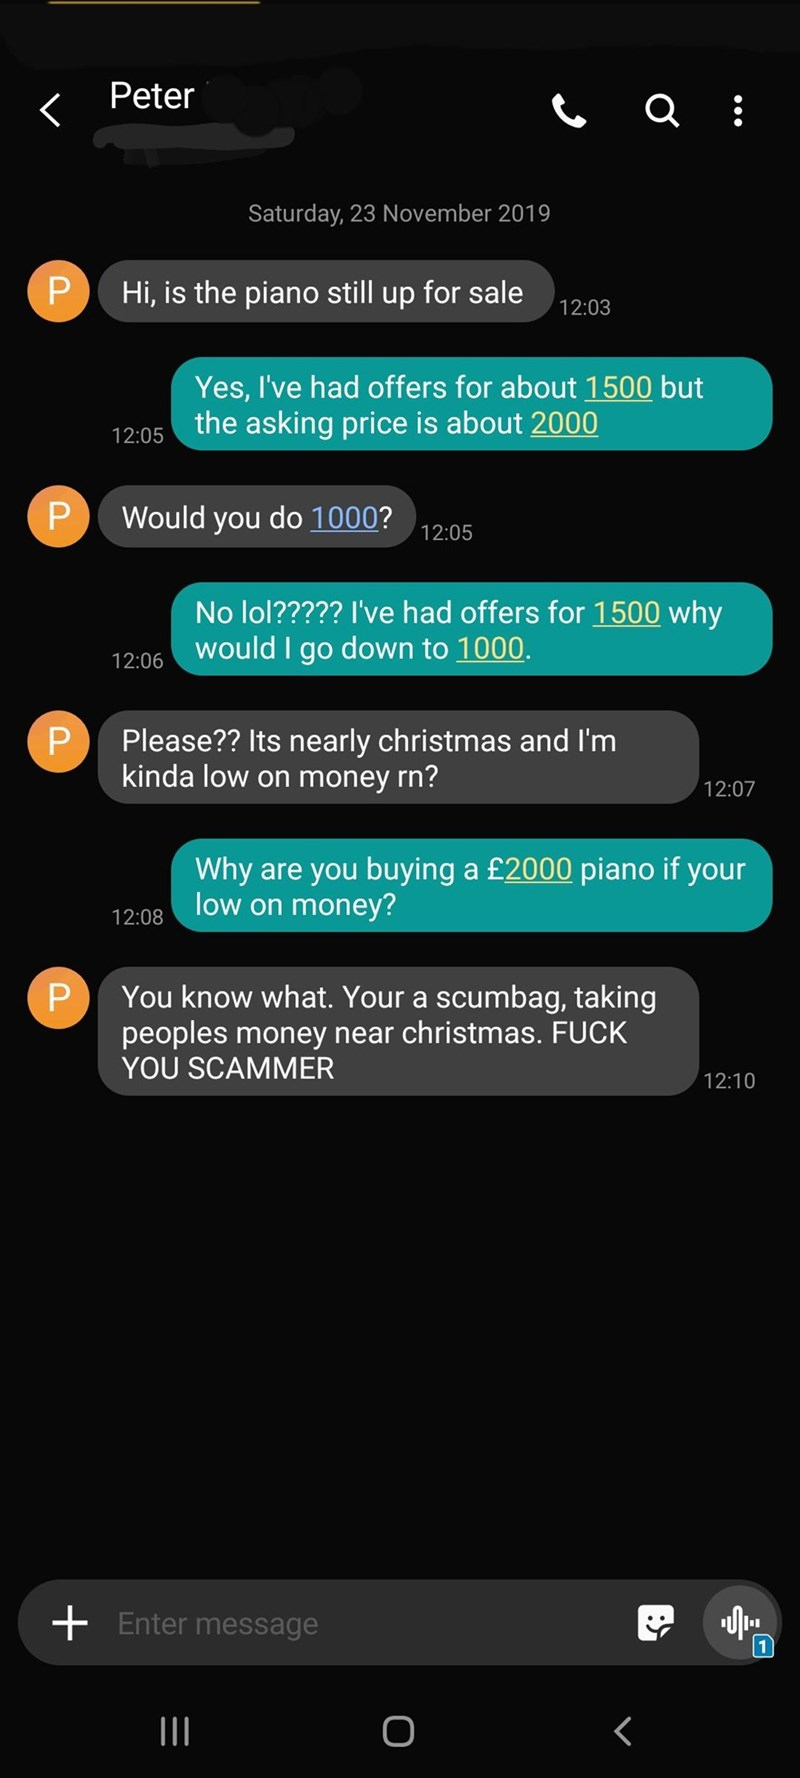 Text - Text - Peter a Saturday, 23 November 2019 P Hi, is the piano still up for sale 12:03 Yes, I've had offers for about 1500 but the asking price is about 2000 12:05 P Would you do 1000? 12:05 No lol????? I've had offers for 1500 why would I go down to 1000. 12:06 P Please?? Its nearly christmas and I'm kinda low on money rn? 12:07 Why are you buying a £2000 piano if your low on money? 12:08 You know what. Your a scumbag, taking P peoples money near christmas. FUCK YOU SCAMMER 12:10 Enter mes